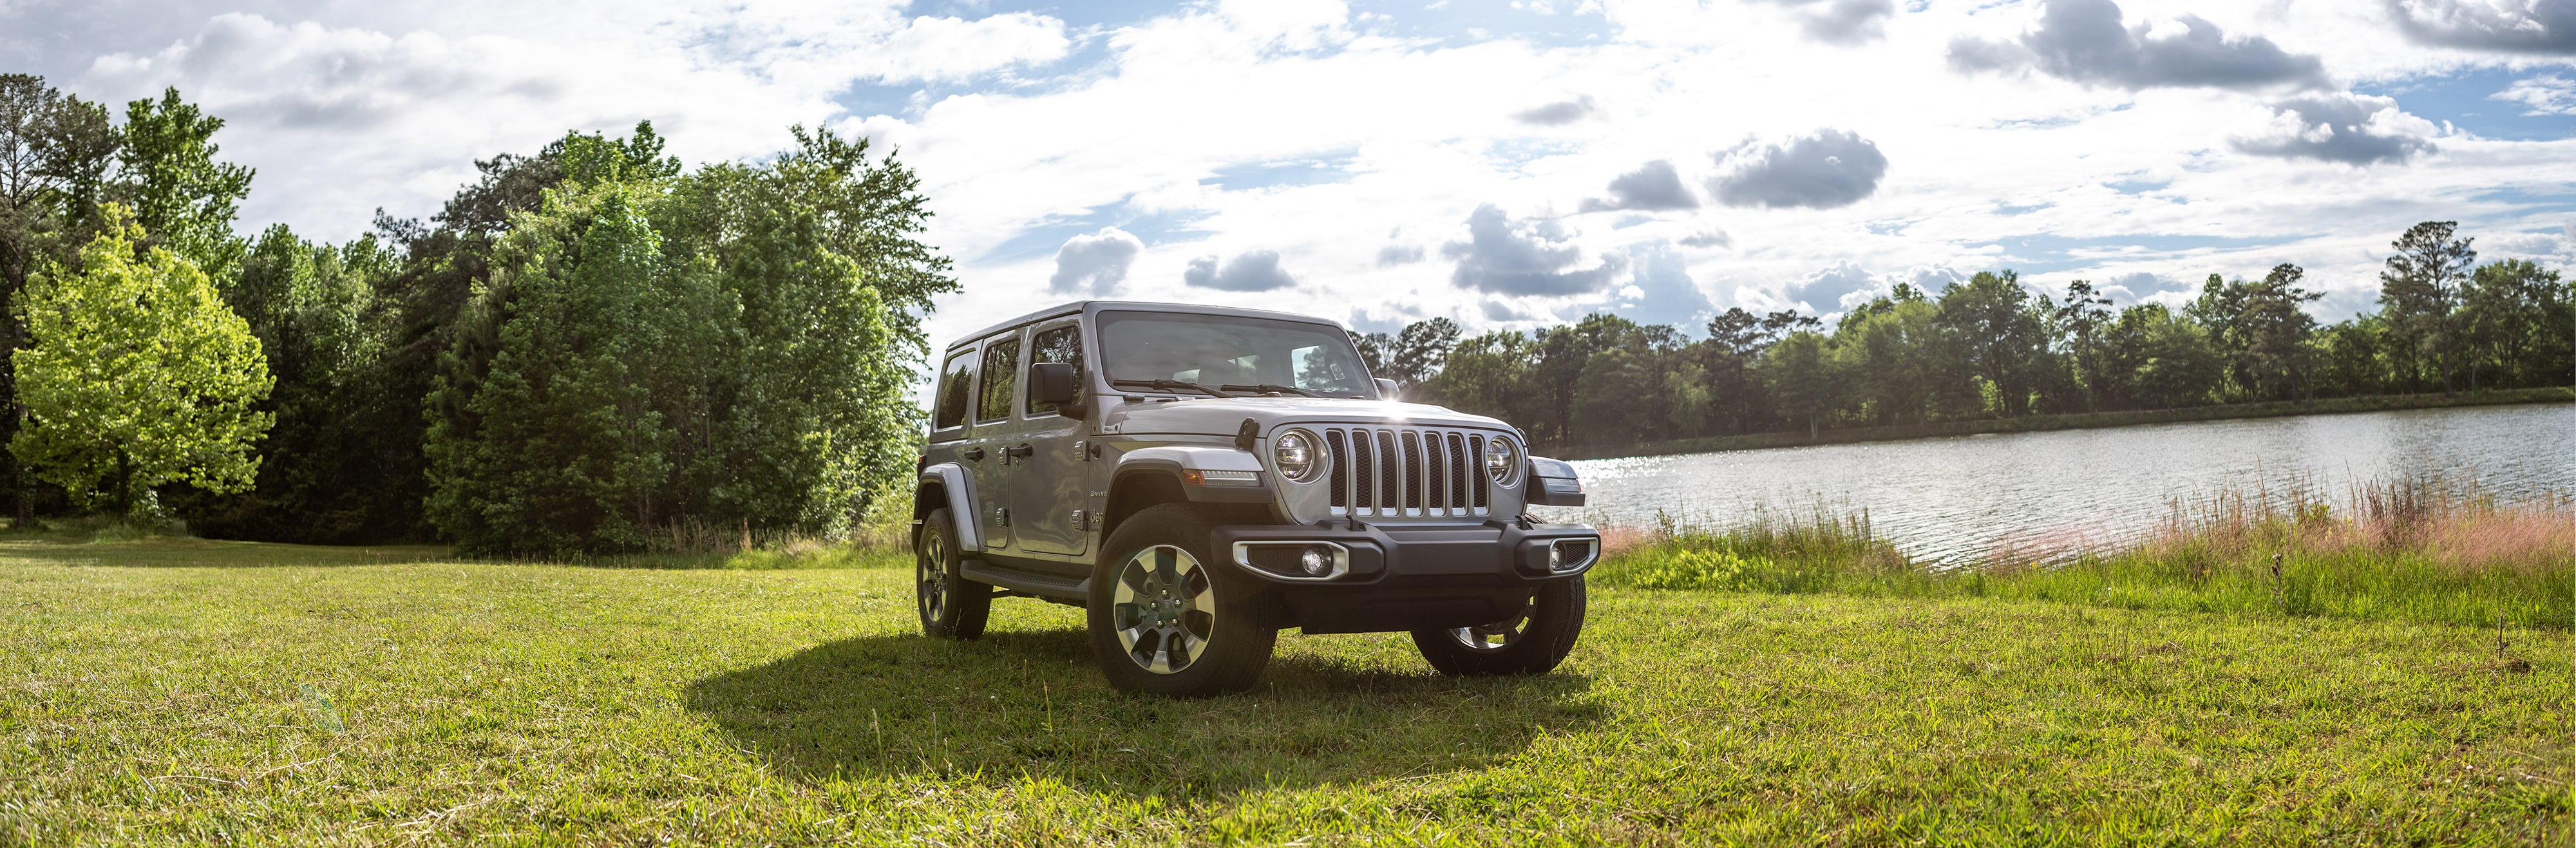 Jeep Dealership Baton Rouge >> Ralph Sellers Chrysler Dodge Jeep Ram Dealership Baton Rouge Save